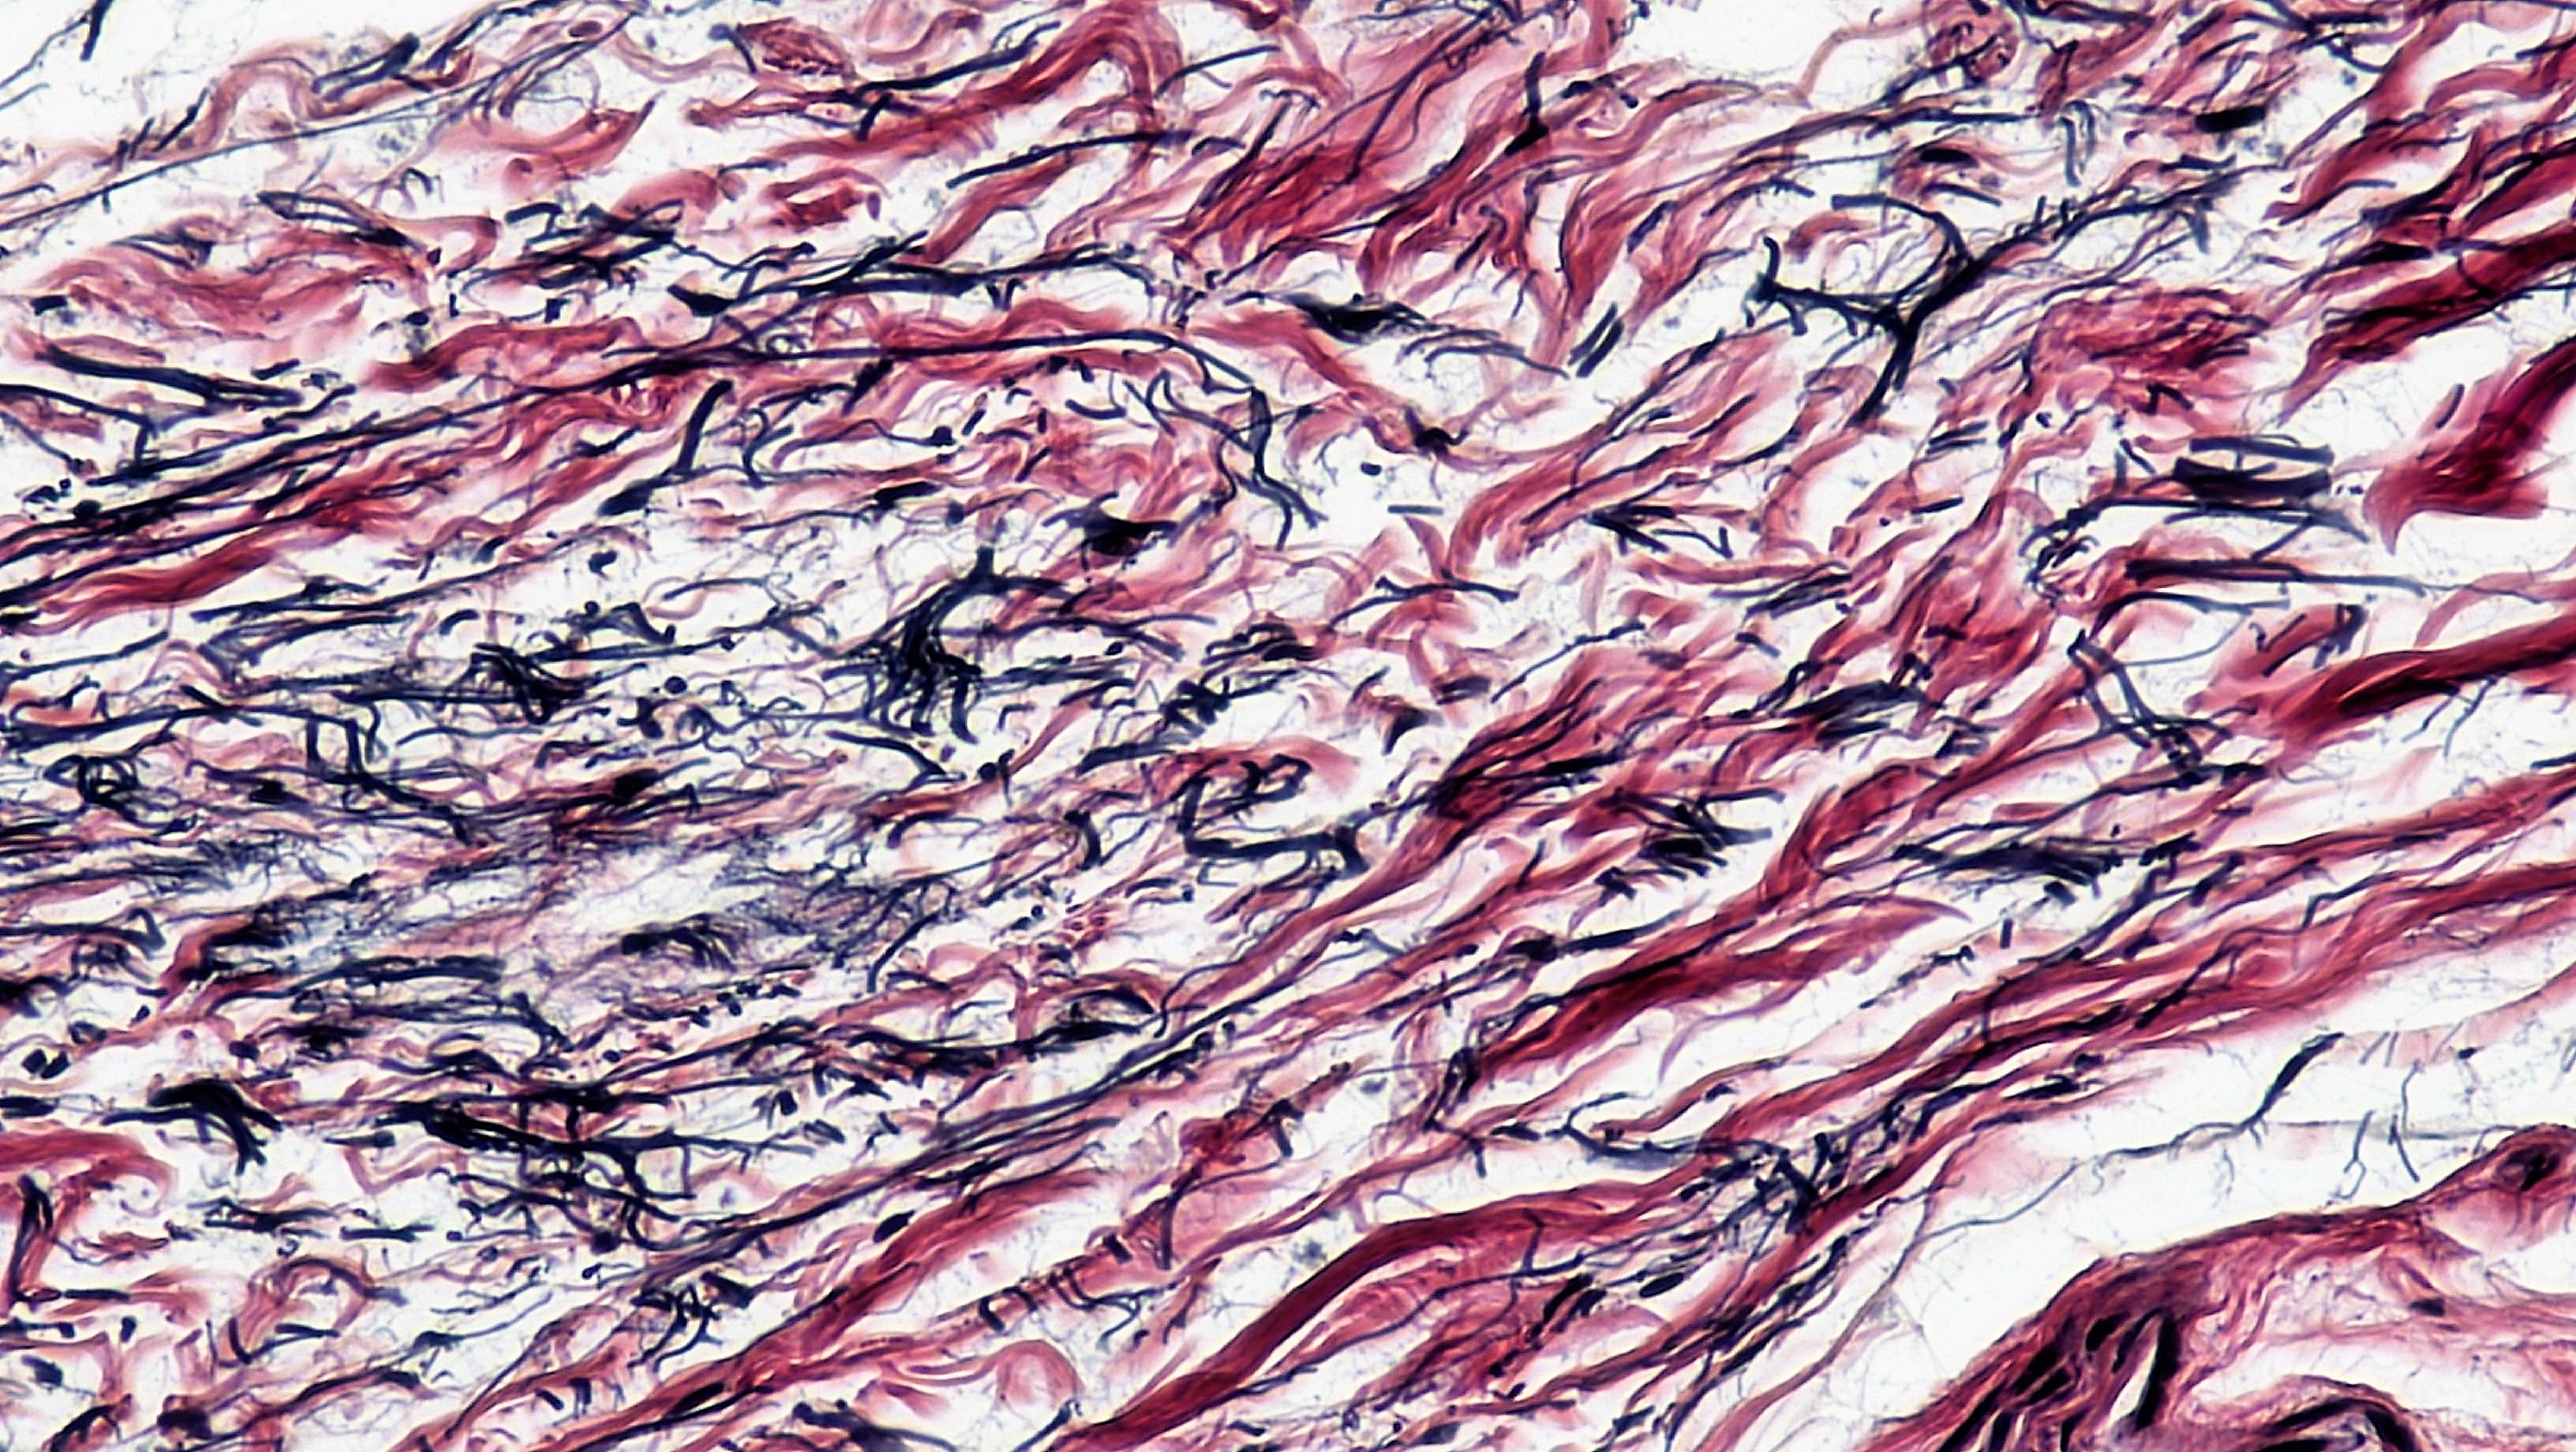 Mammalian Histology Connective Tissues Berkshire Community